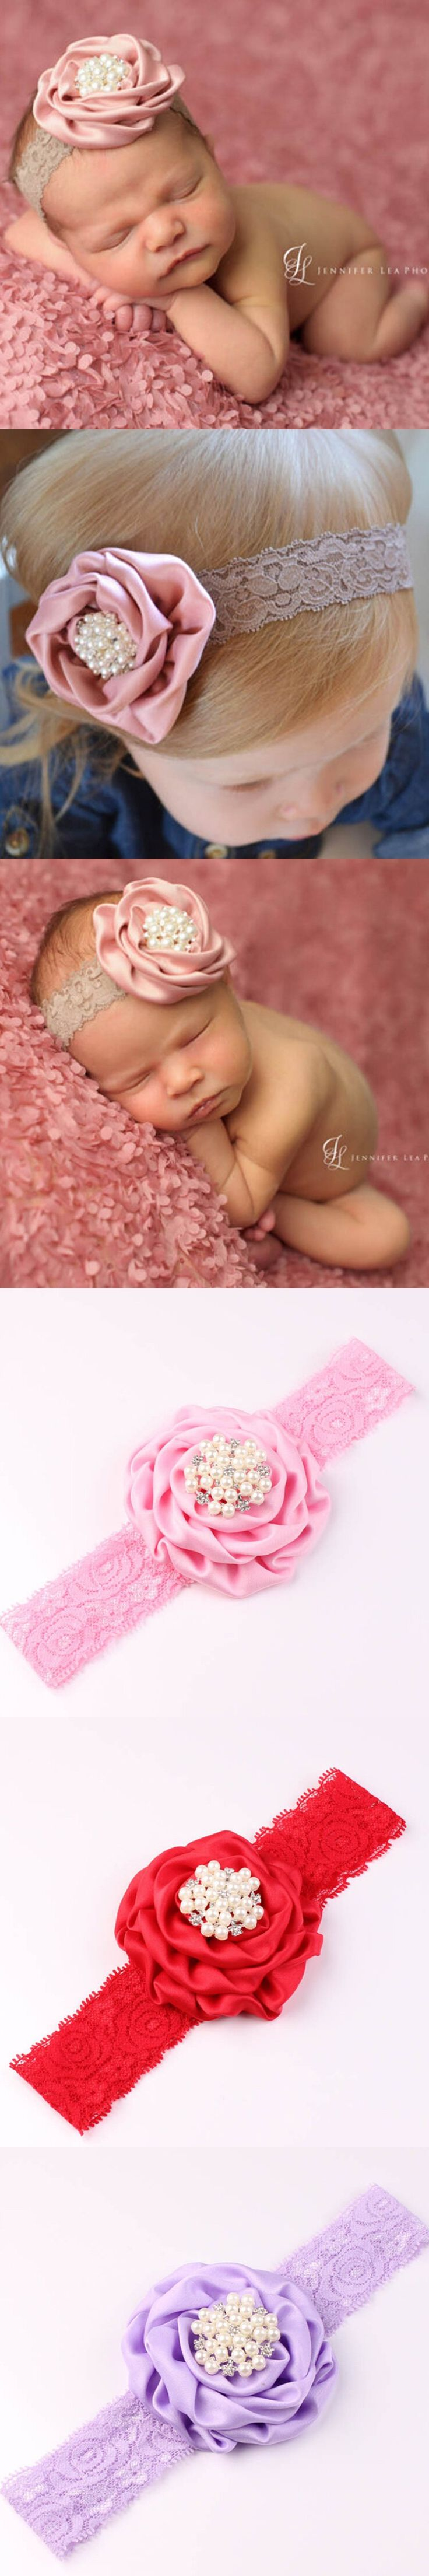 New Hot Fashion Lace Headbands Rose Flower Crystal Rhinestone Baby Hair Accessories Baby Girl Children Hair Bands Baby Headband